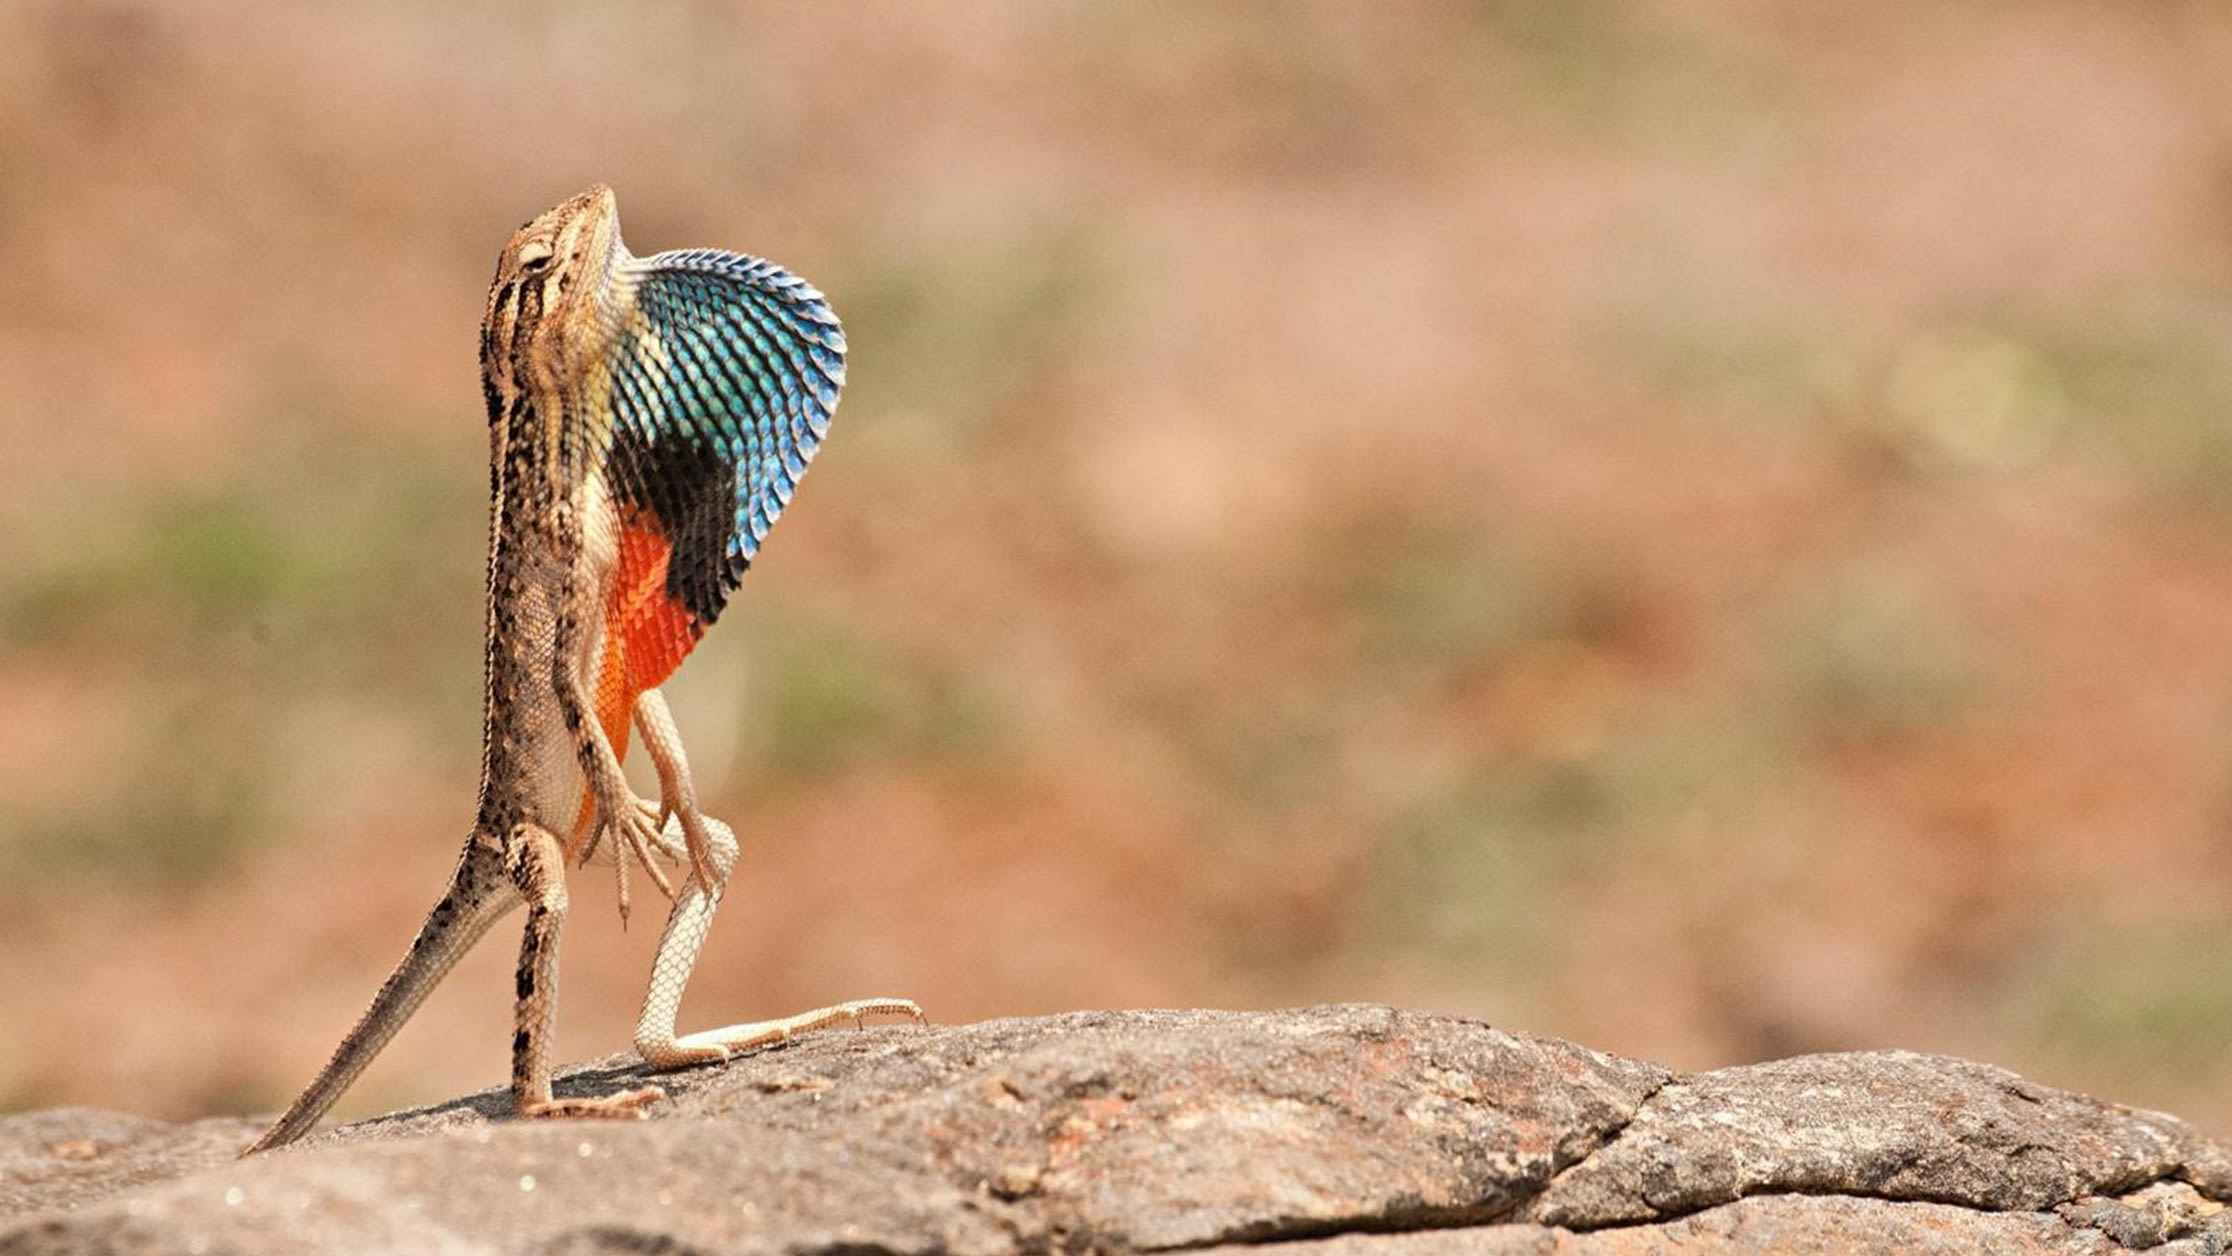 A Darwin's large fan-throated lizard stands atop a rocky outcrop with great fanfare, most likely to impress a female nearby.